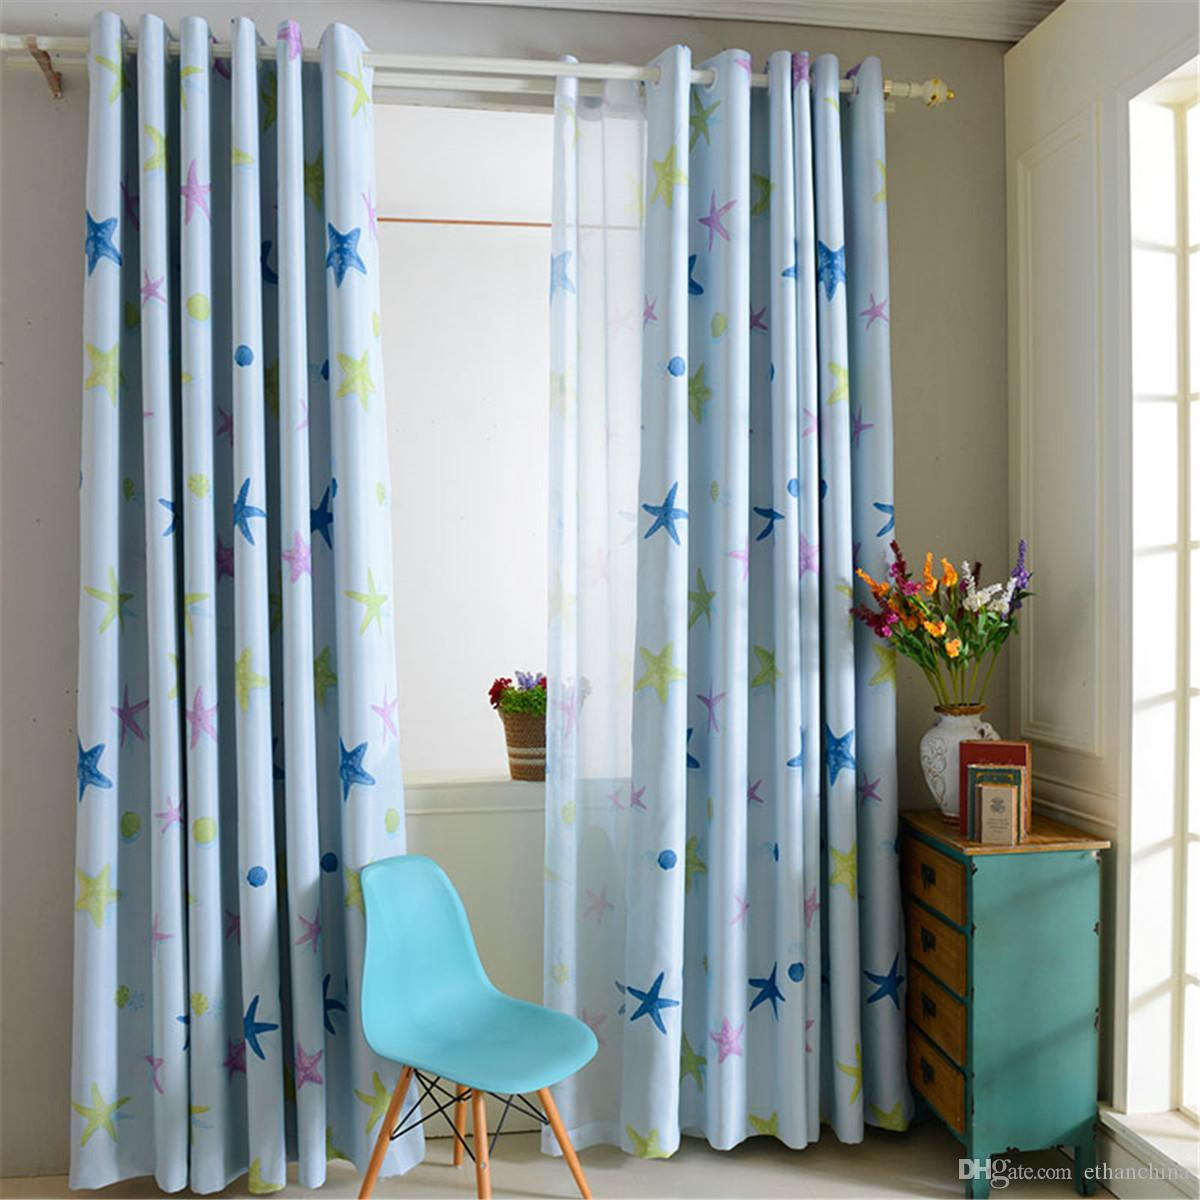 ivolador window blackout curtain balcony valance starfish pattern polyester curtains for home bedroom decaration 100x250cm curtain curtains blackout online